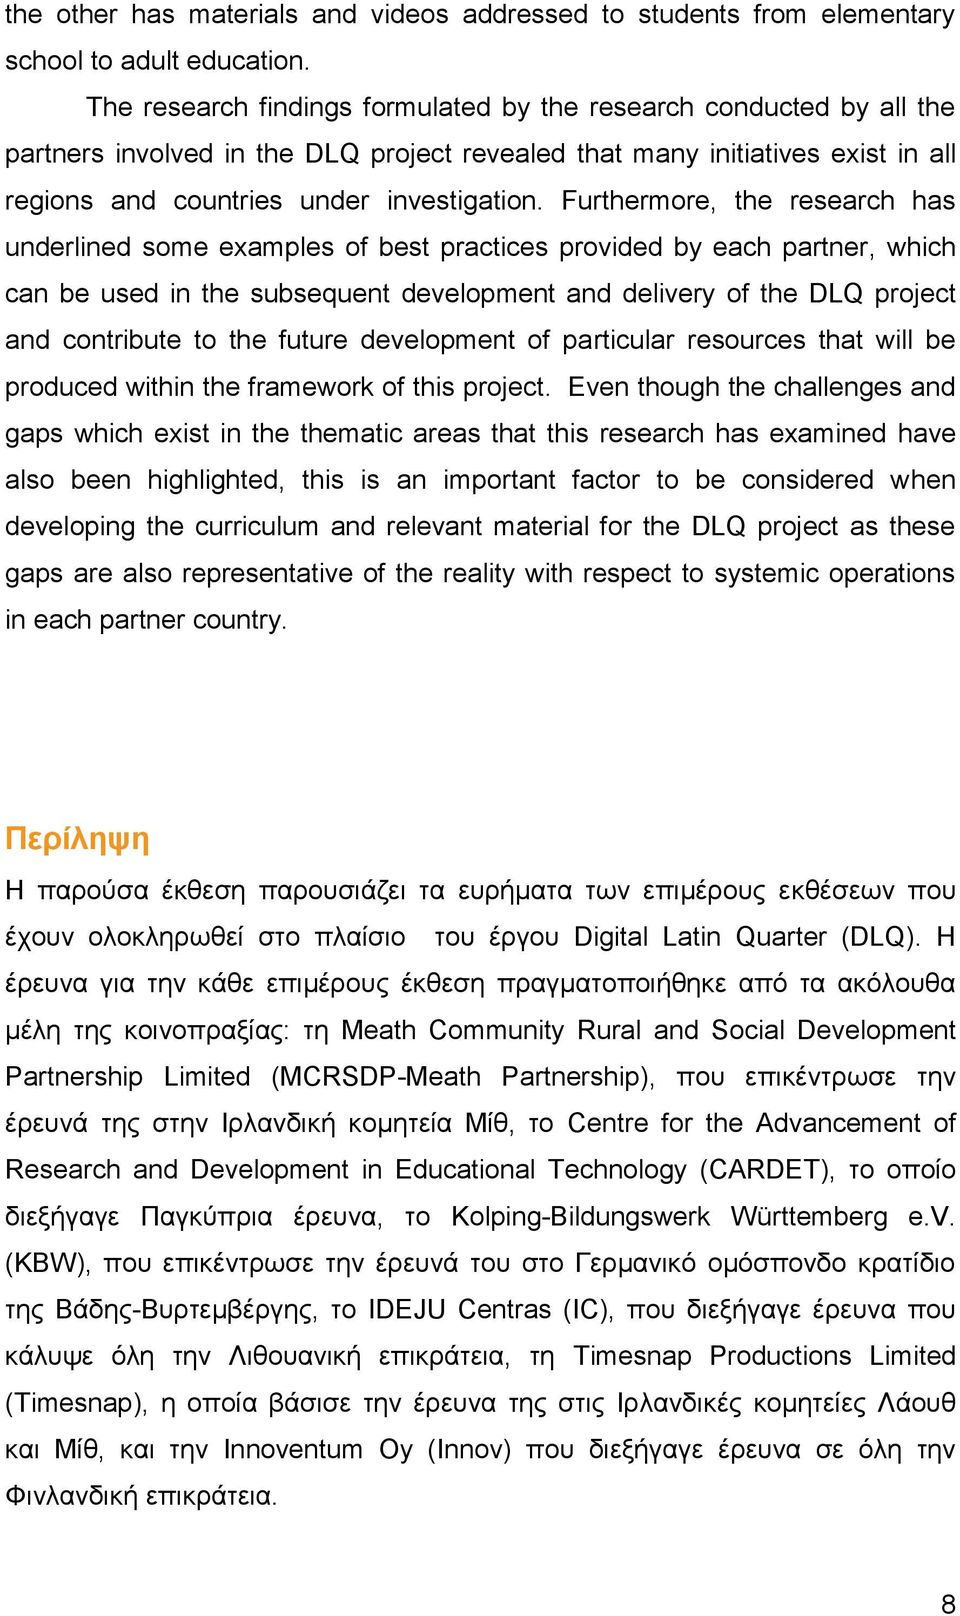 Furthermore, the research has underlined some examples of best practices provided by each partner, which can be used in the subsequent development and delivery of the DLQ project and contribute to